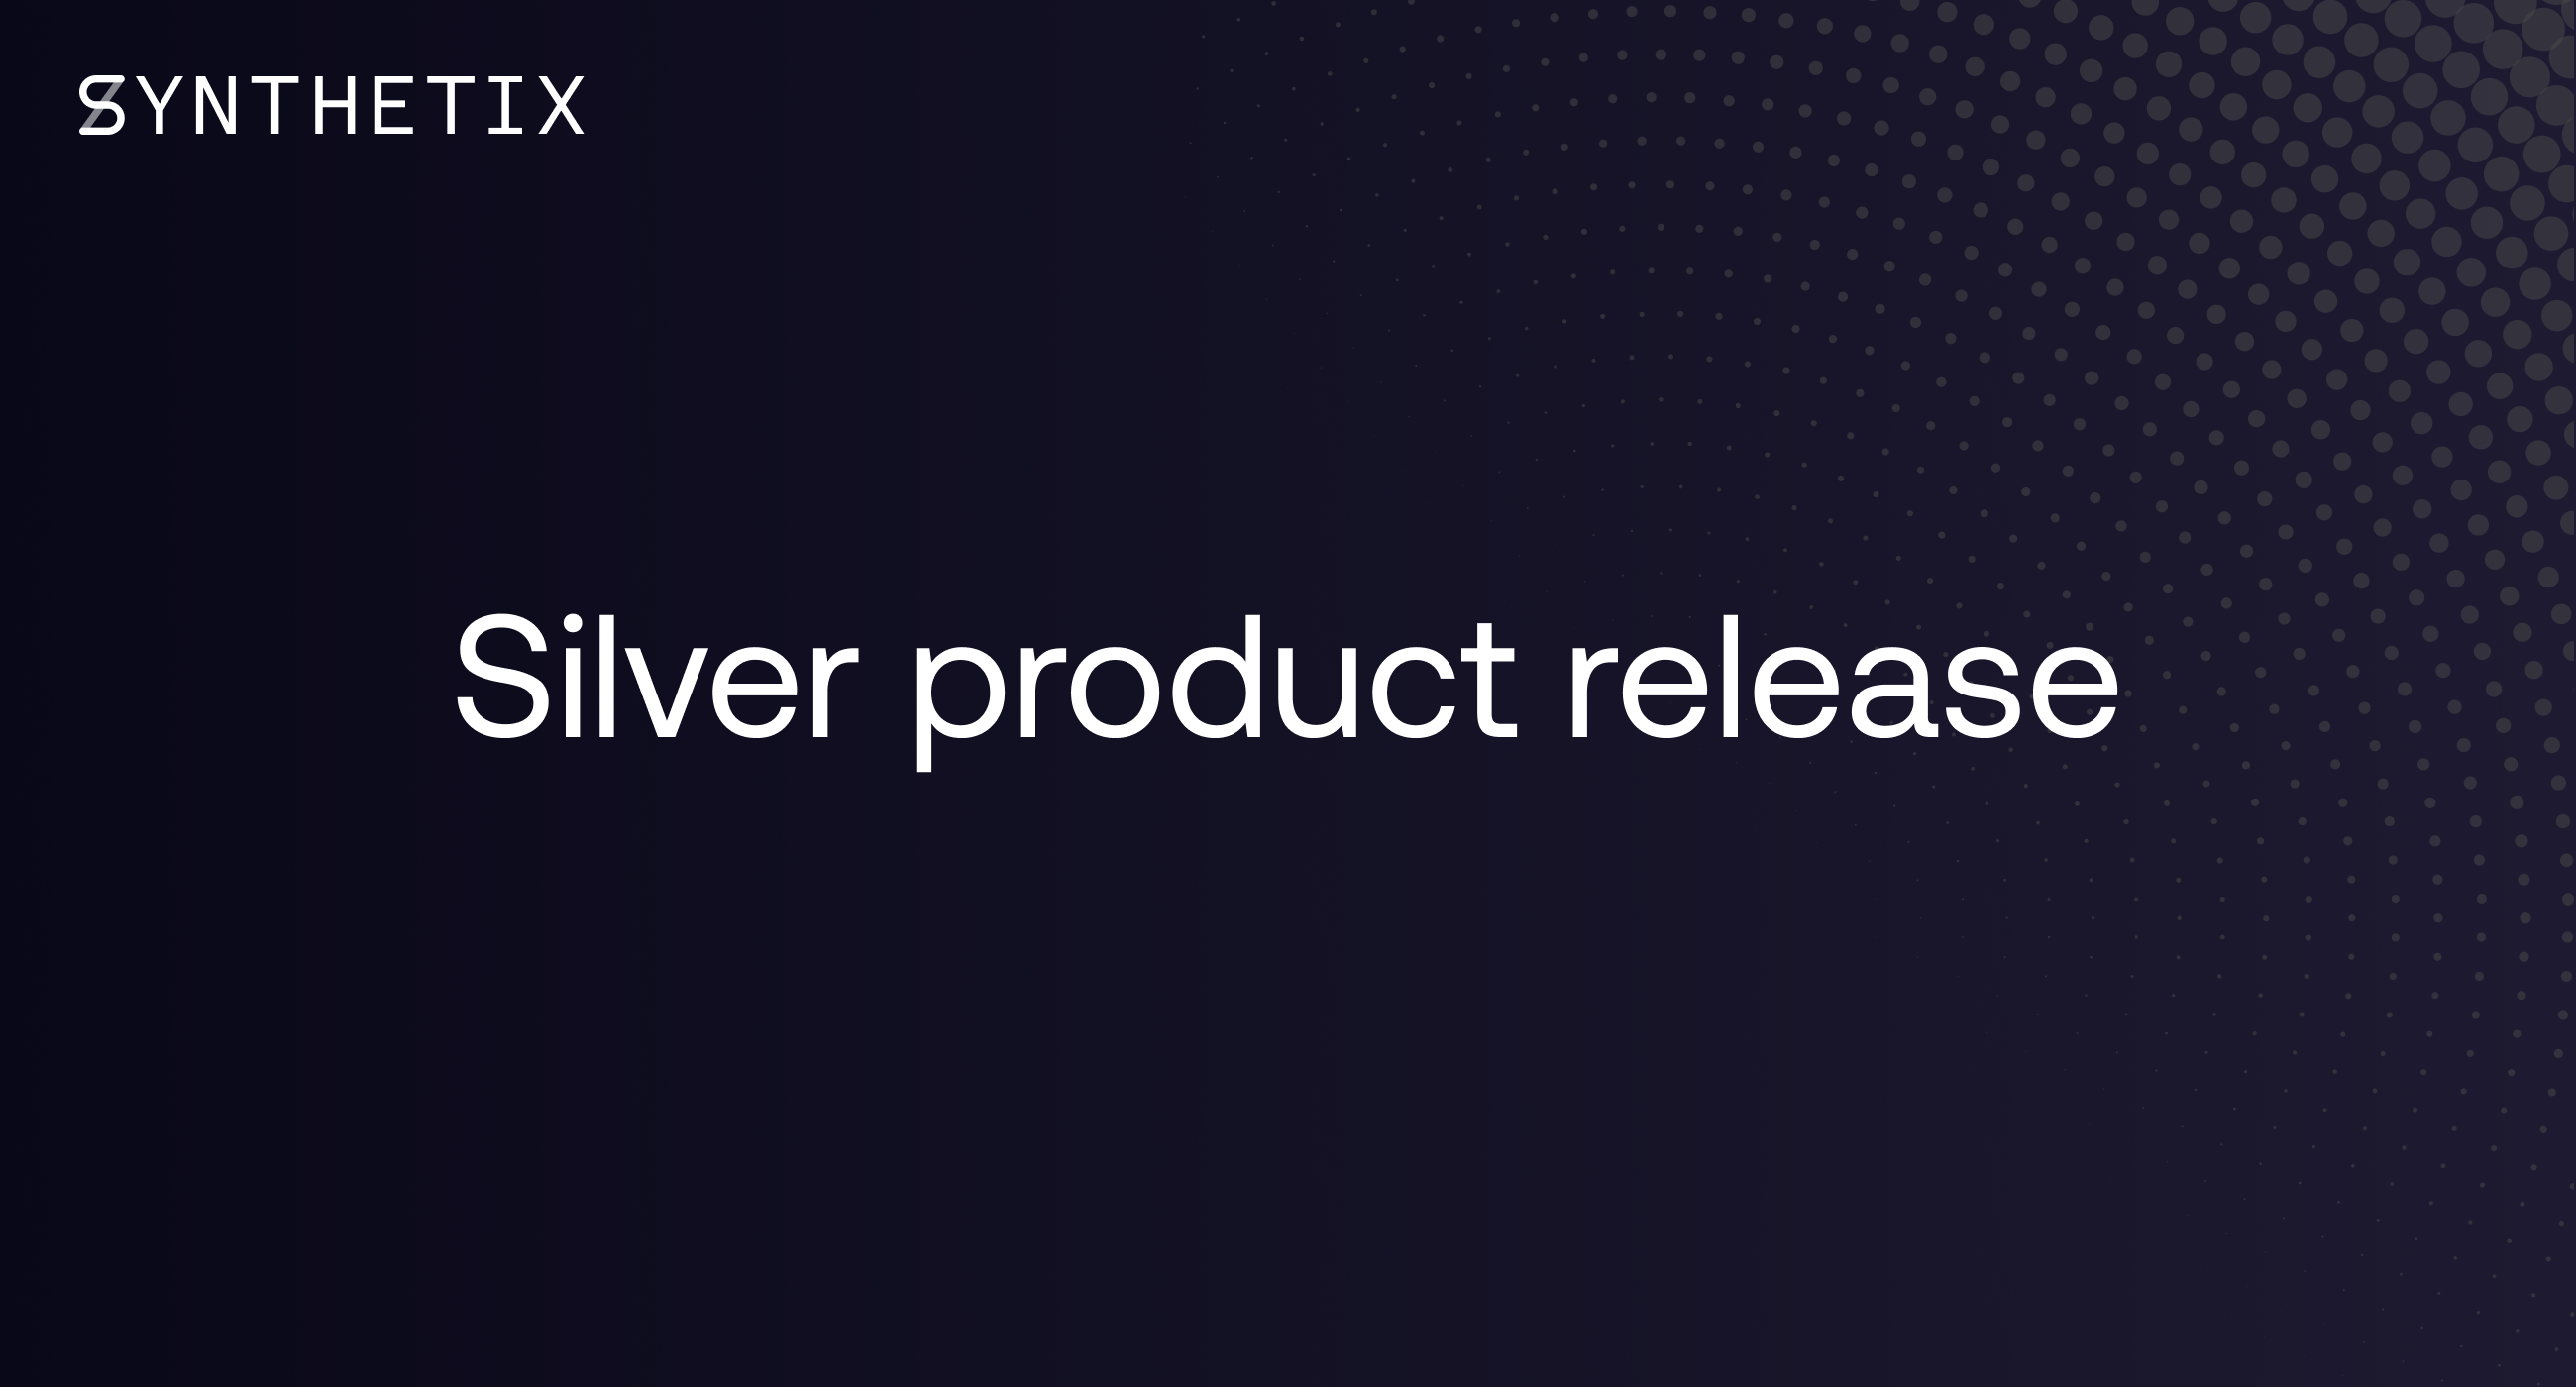 Silver product release